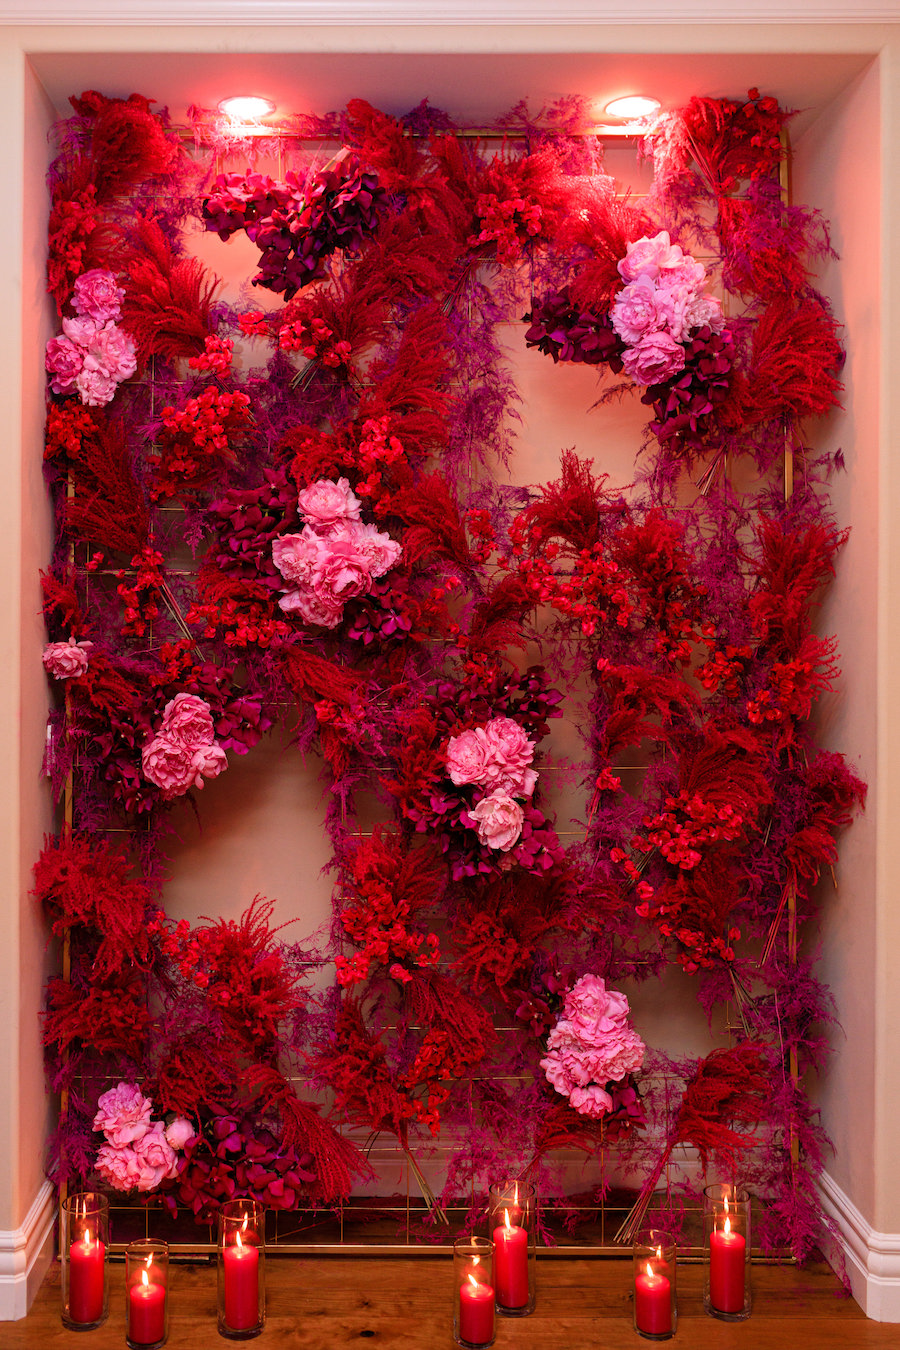 red and pink floral arrangements on wall with red lighting